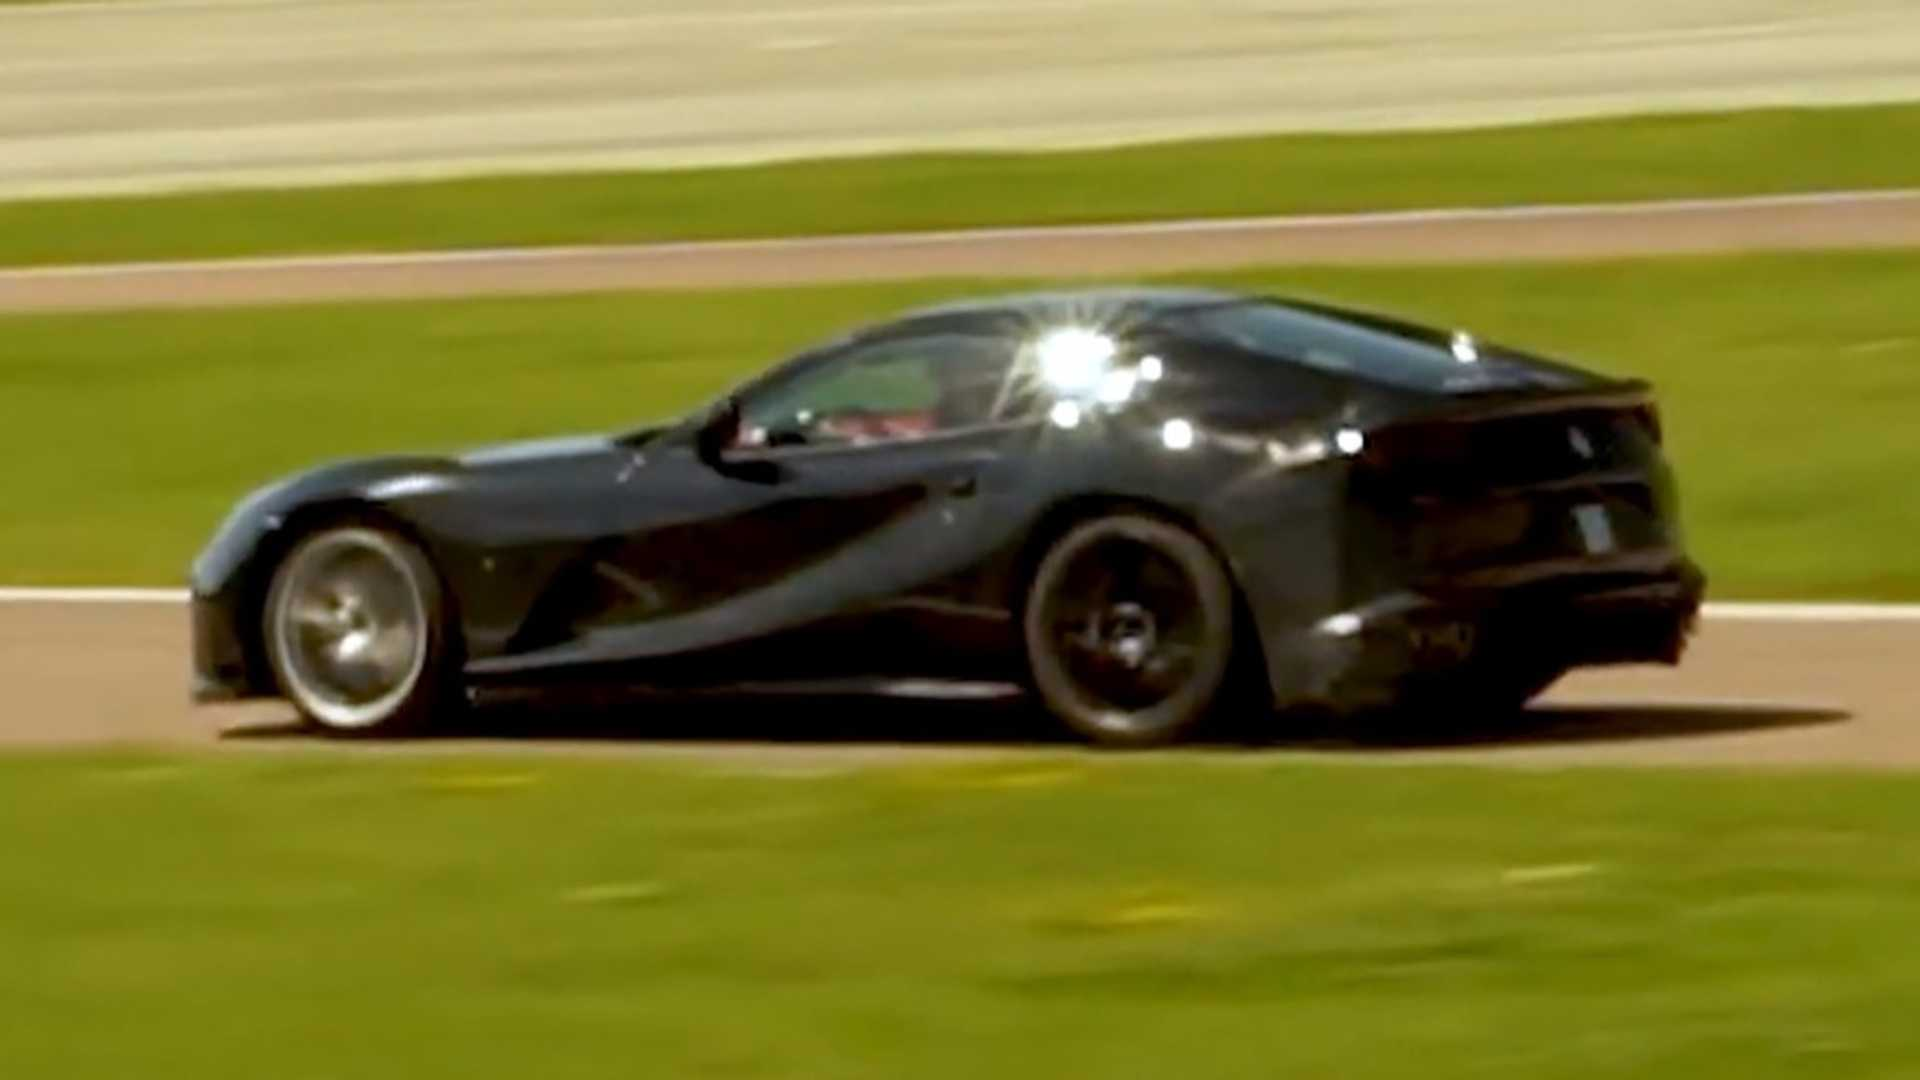 Ferrari Spied Possibly Testing Hotter 812 Superfast At Fiorano